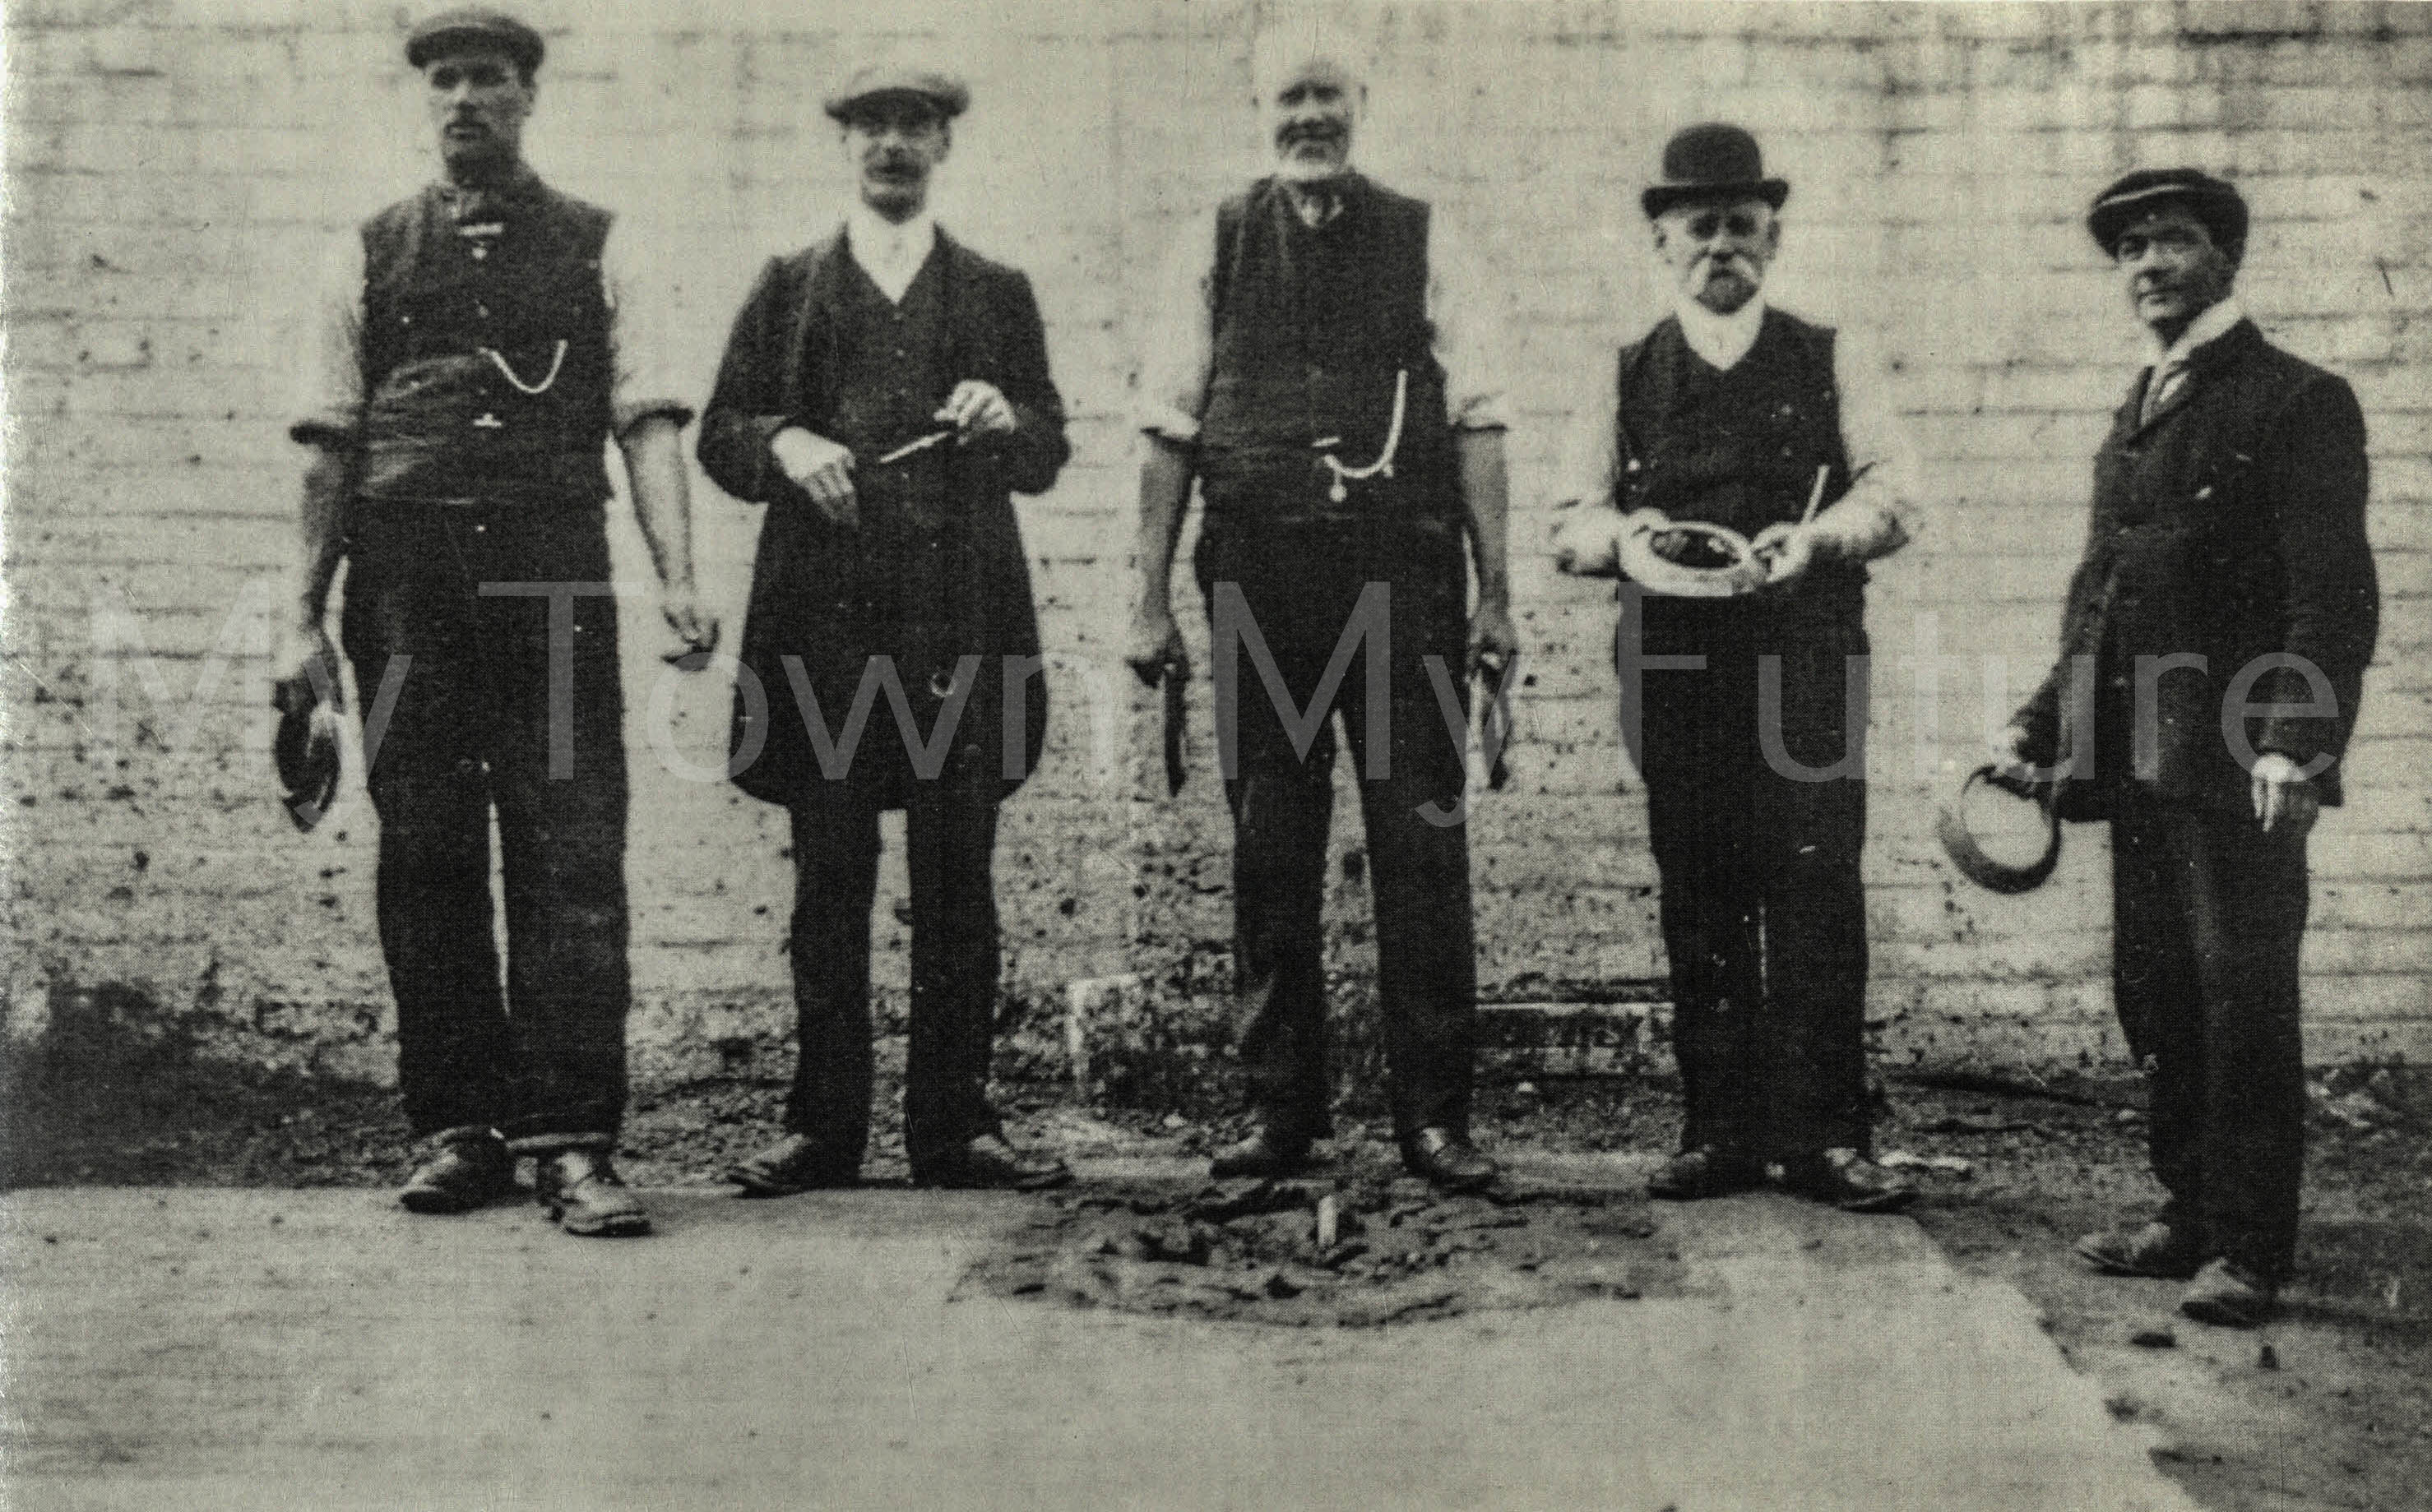 Eston, playing Quoits near to Miner's football field